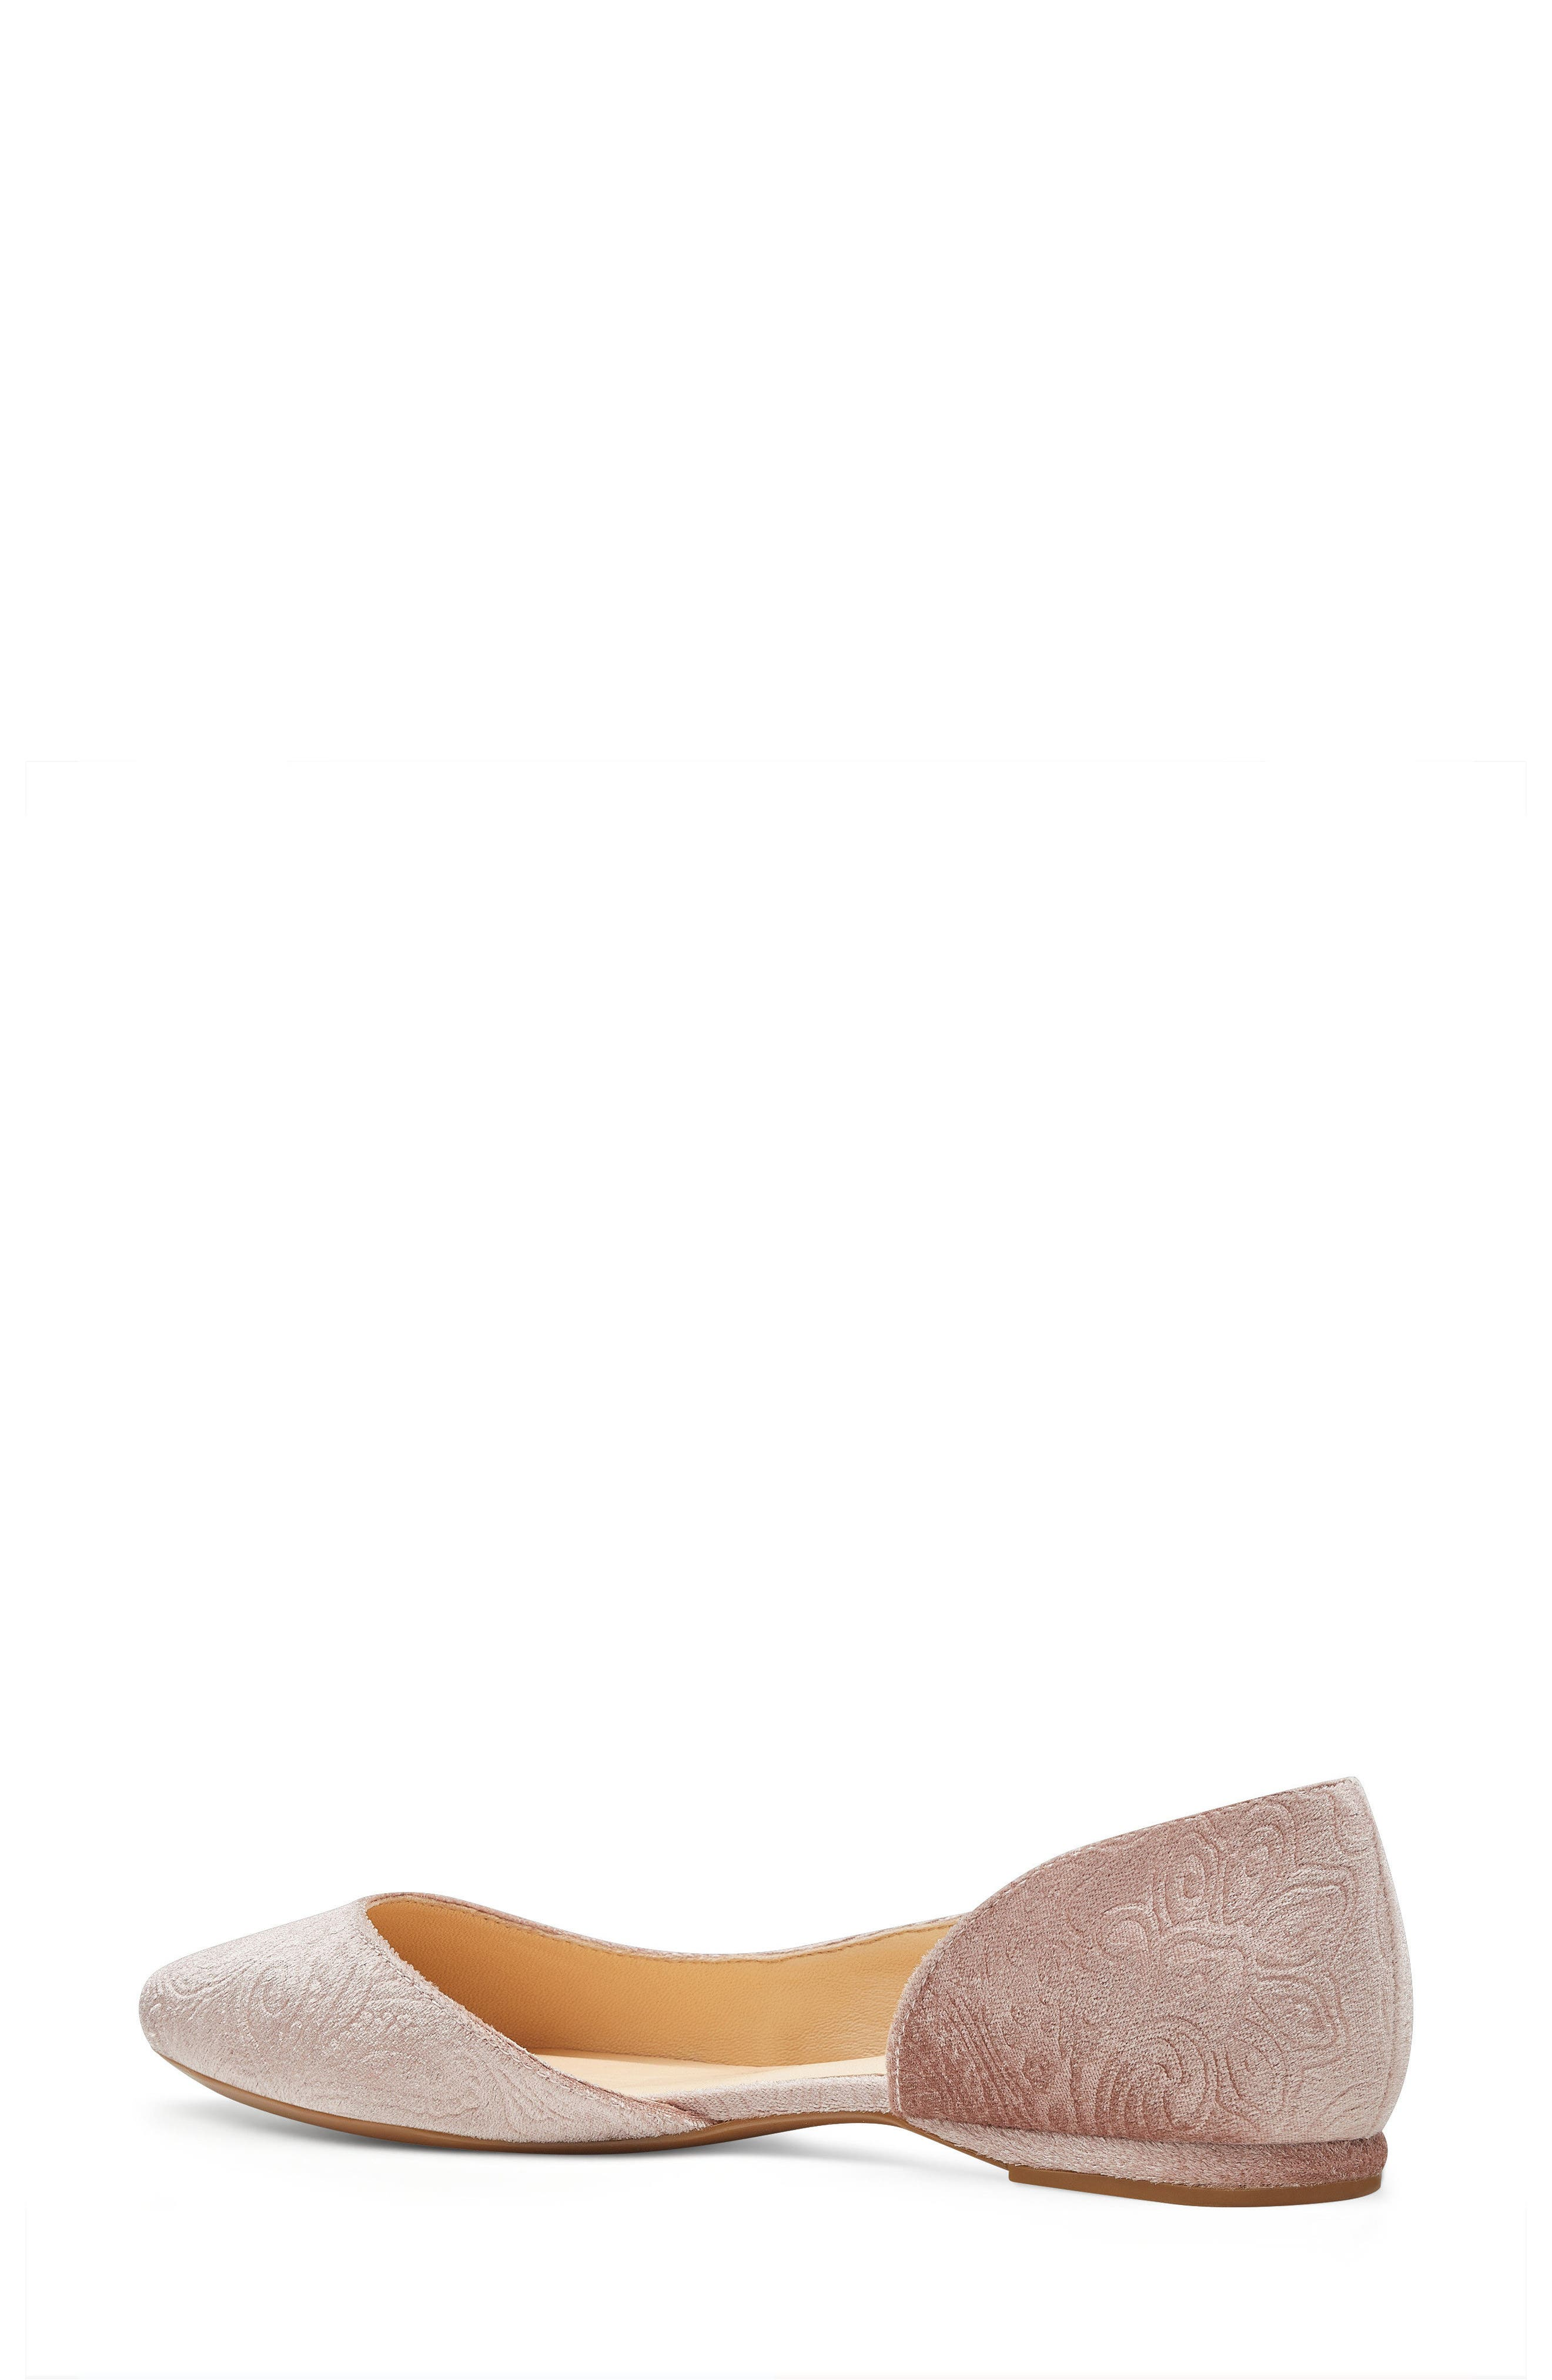 Spruce d'Orsay Flat,                             Alternate thumbnail 2, color,                             Natural Fabric